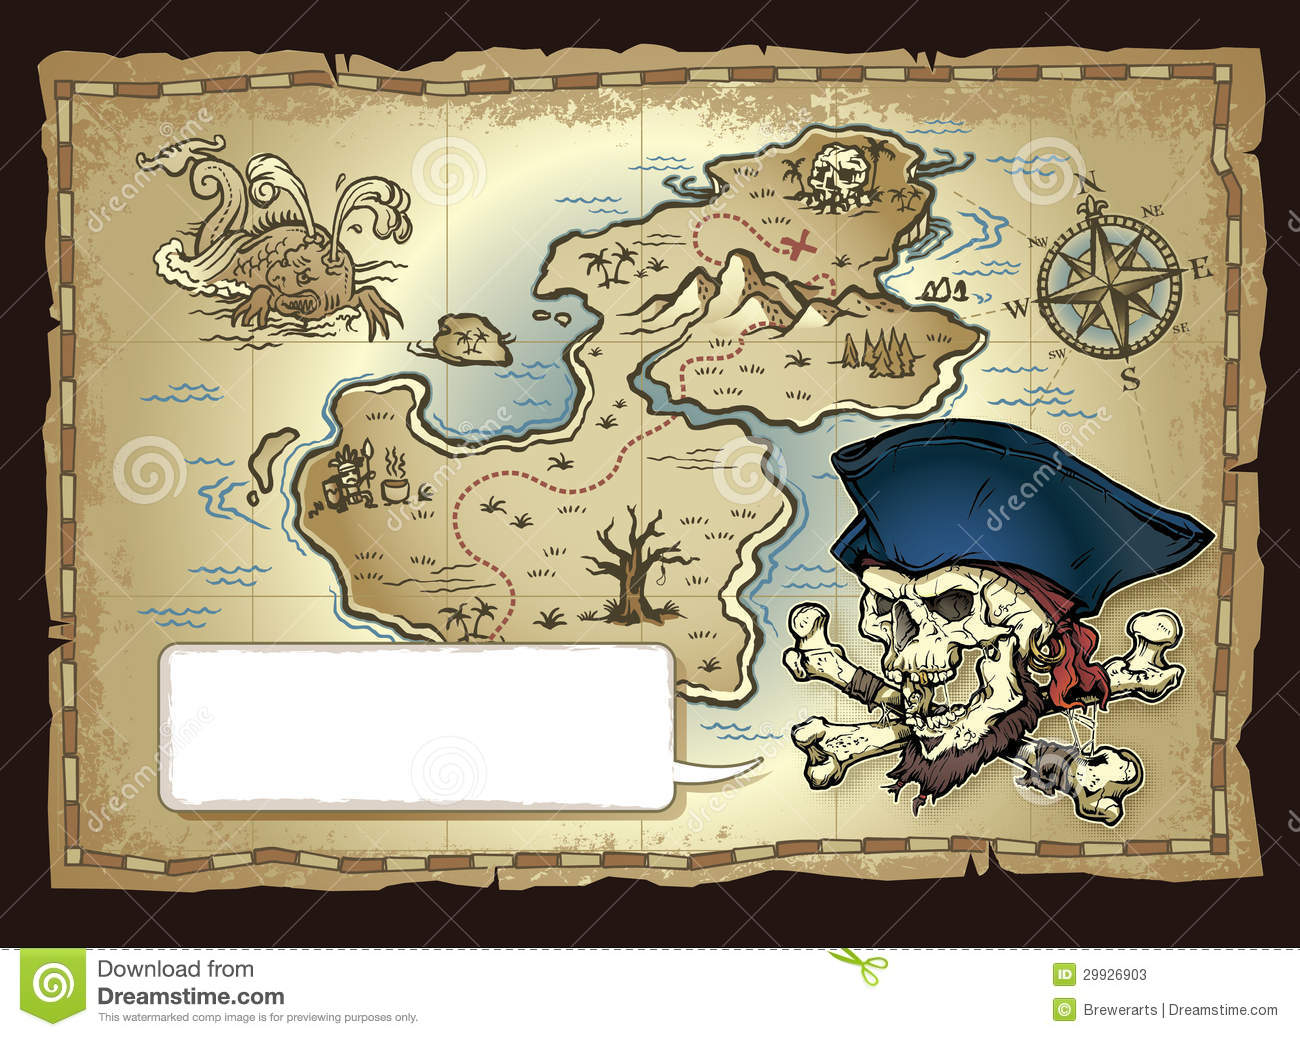 Caribbean clipart pirate map Map treasure VBS image Pirate